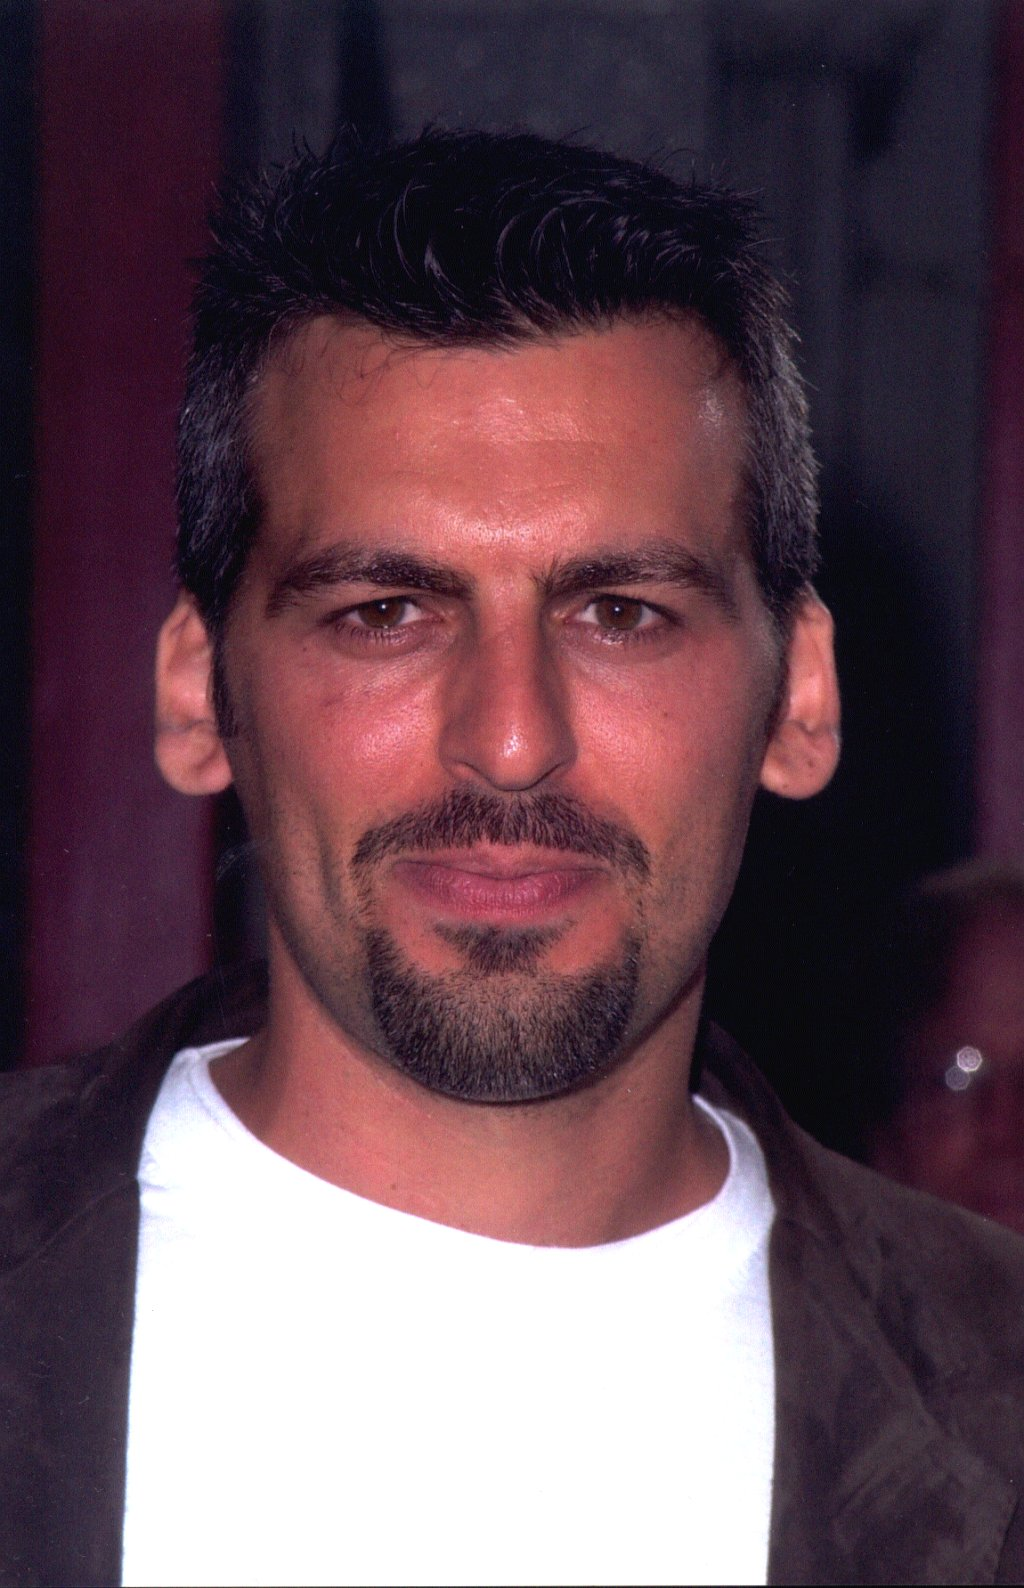 Poze Oded Fehr - Actor - Poza 13 din 20 - CineMagia.ro